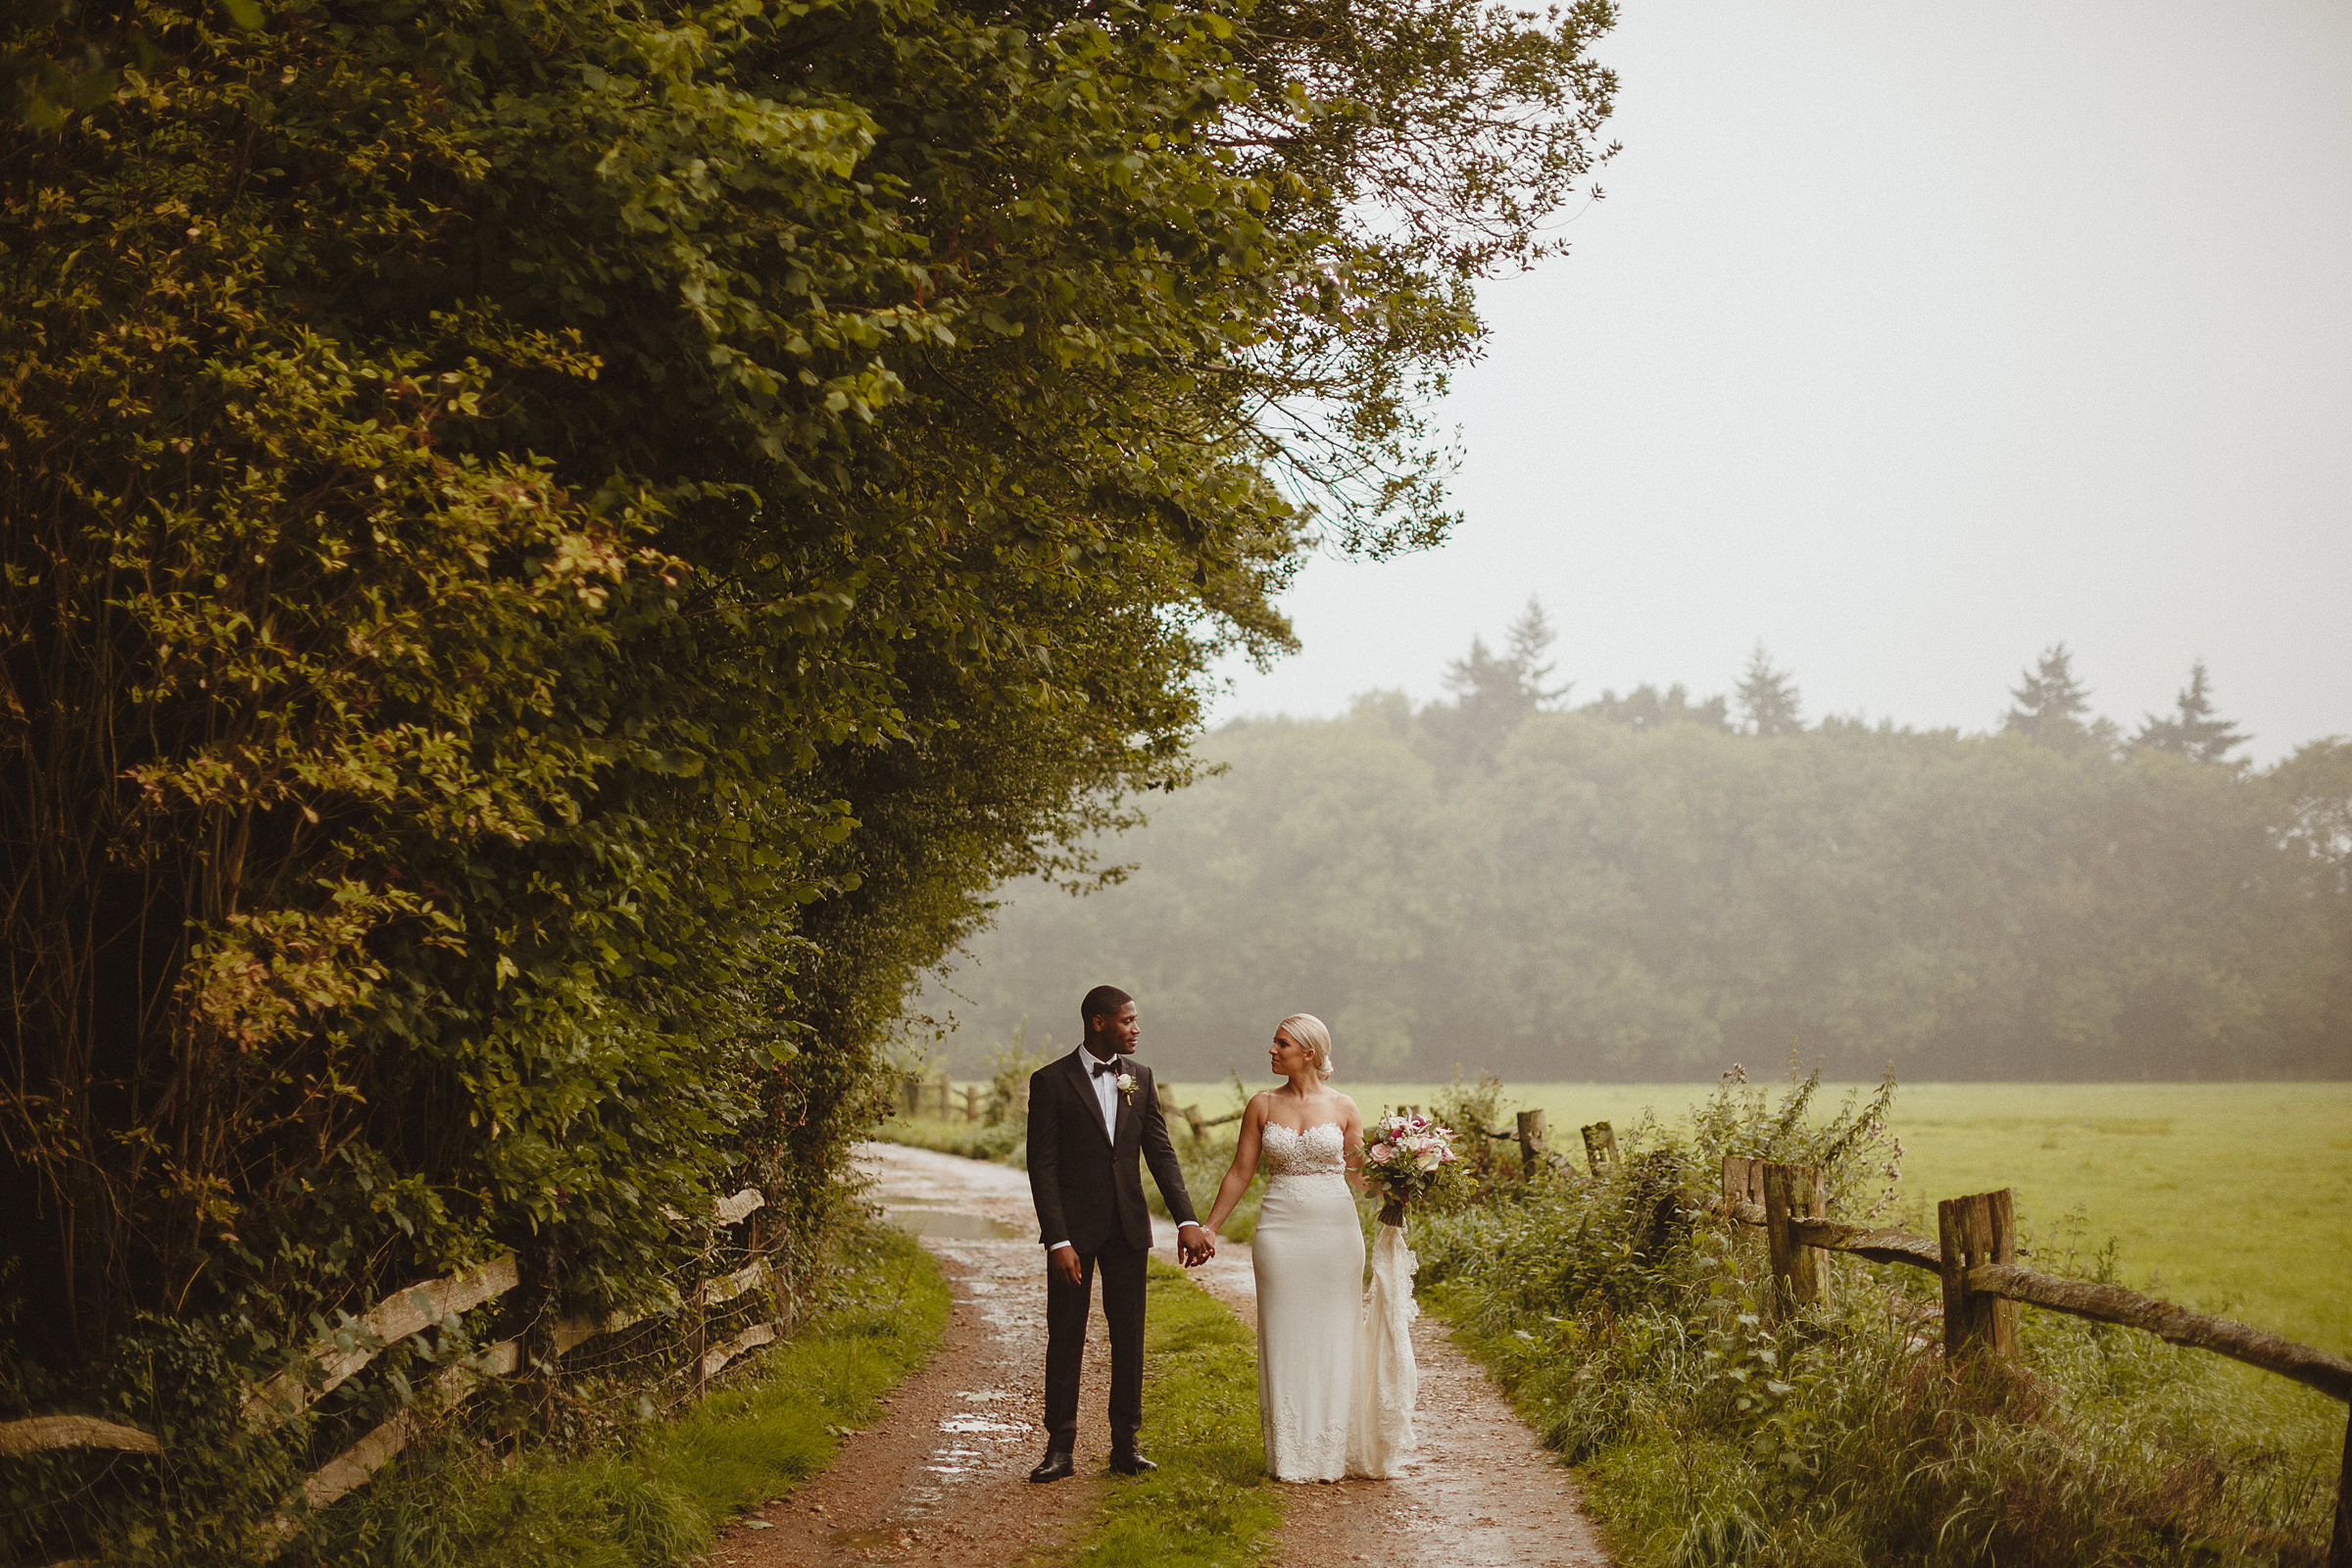 Couple portrait on country road - photo by Ed Peers Photography